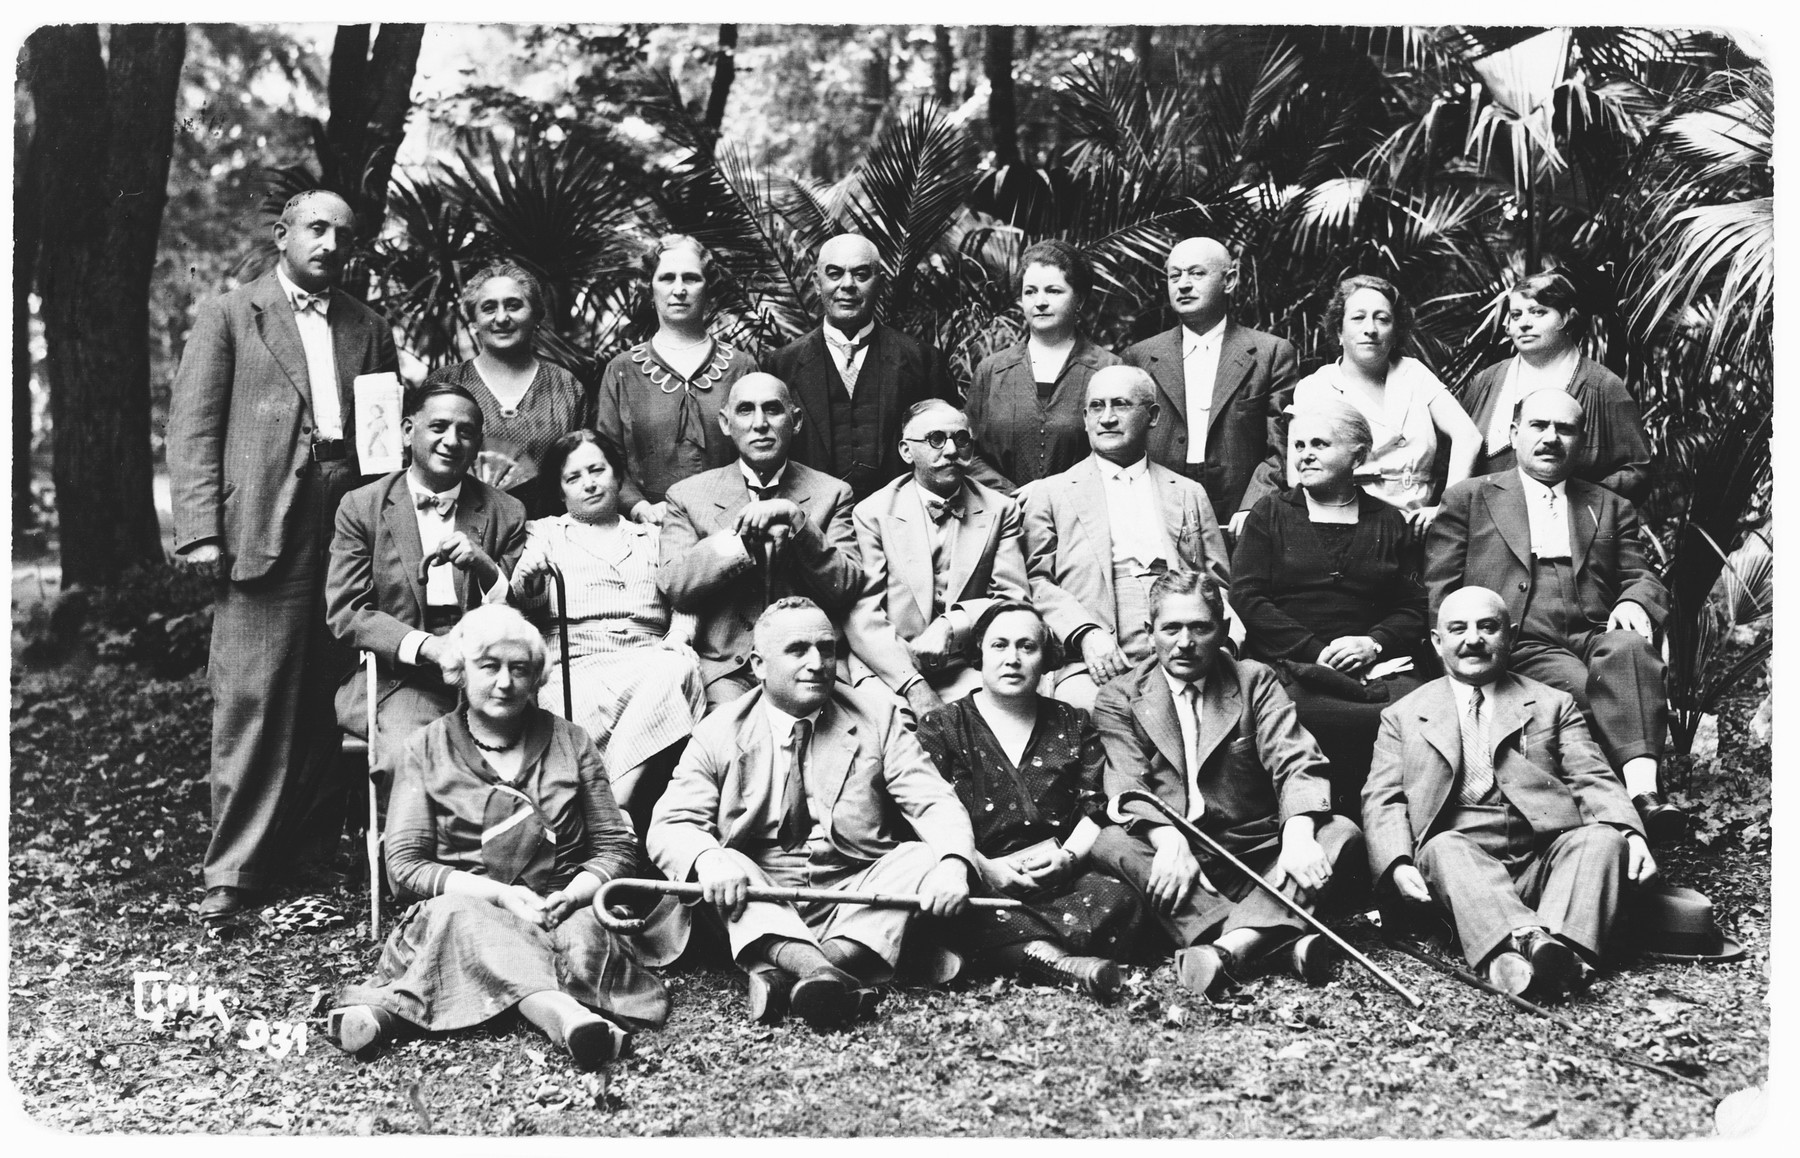 Group portrait of a Jewish social circle in Osijek, Croatia.  Among those pictured are Marko Spitzer's parents (front row), and Ilonka Krasso's father (top row, center).